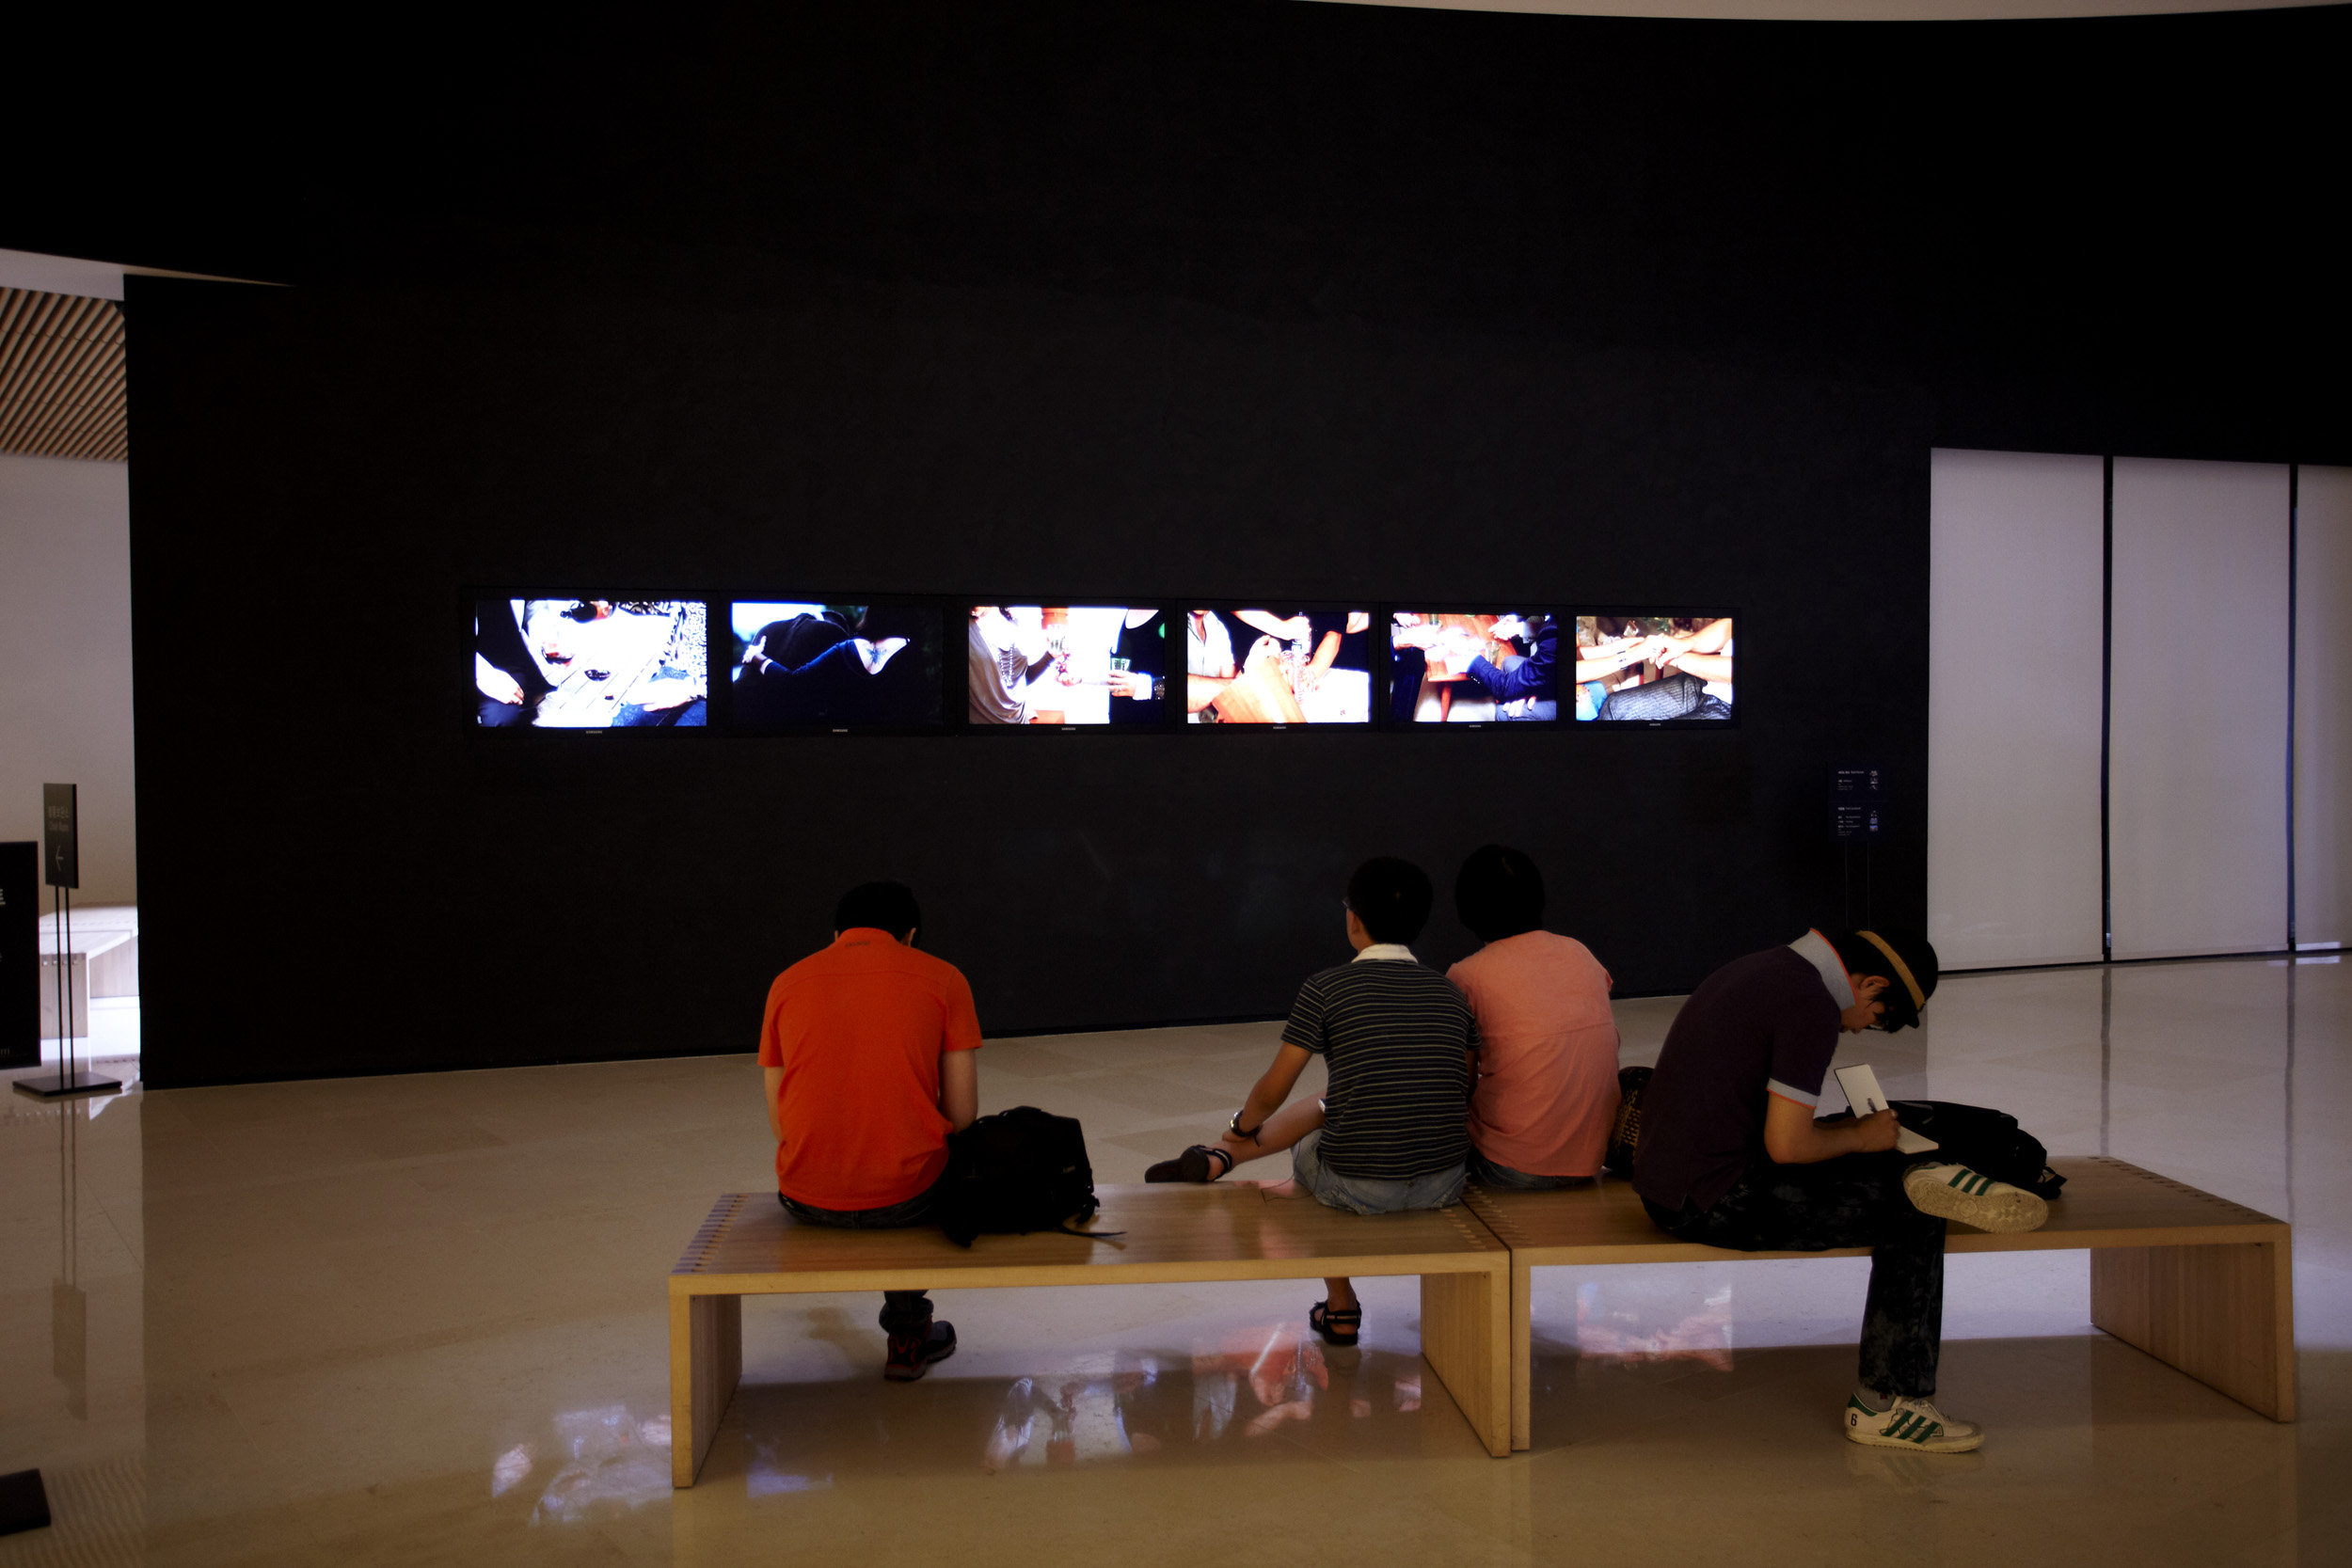 18 Minutes , 6-channel HD video installation, 3 min 05s. Edition of 3. Installed at LEEUM Samsung Museum of Art, 2010.